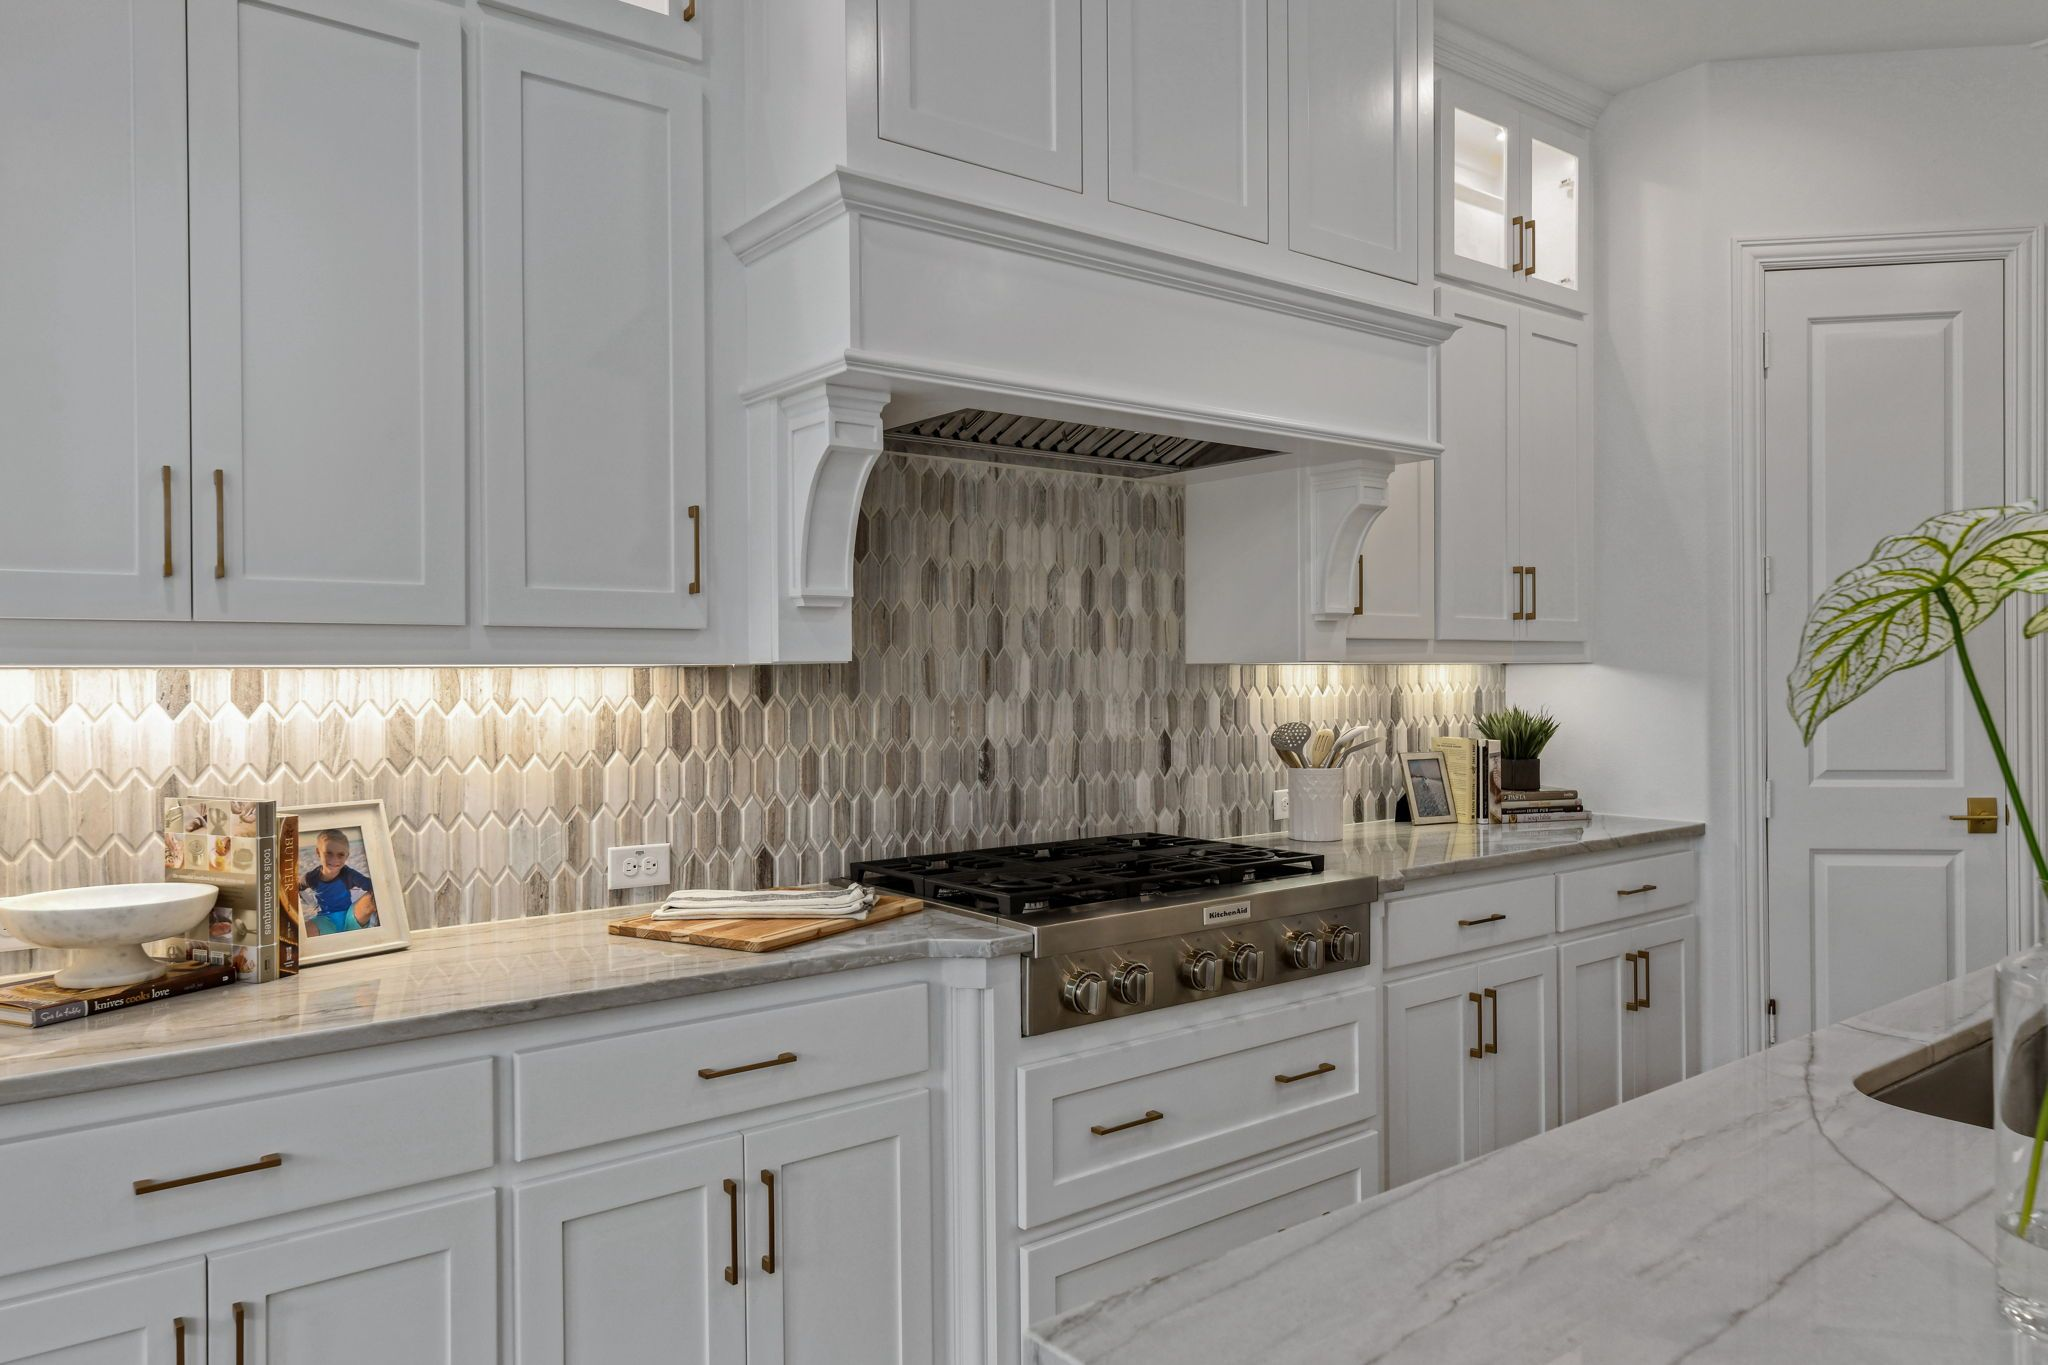 Kitchen featured in the B815 By BelclaireHomes in Dallas, TX